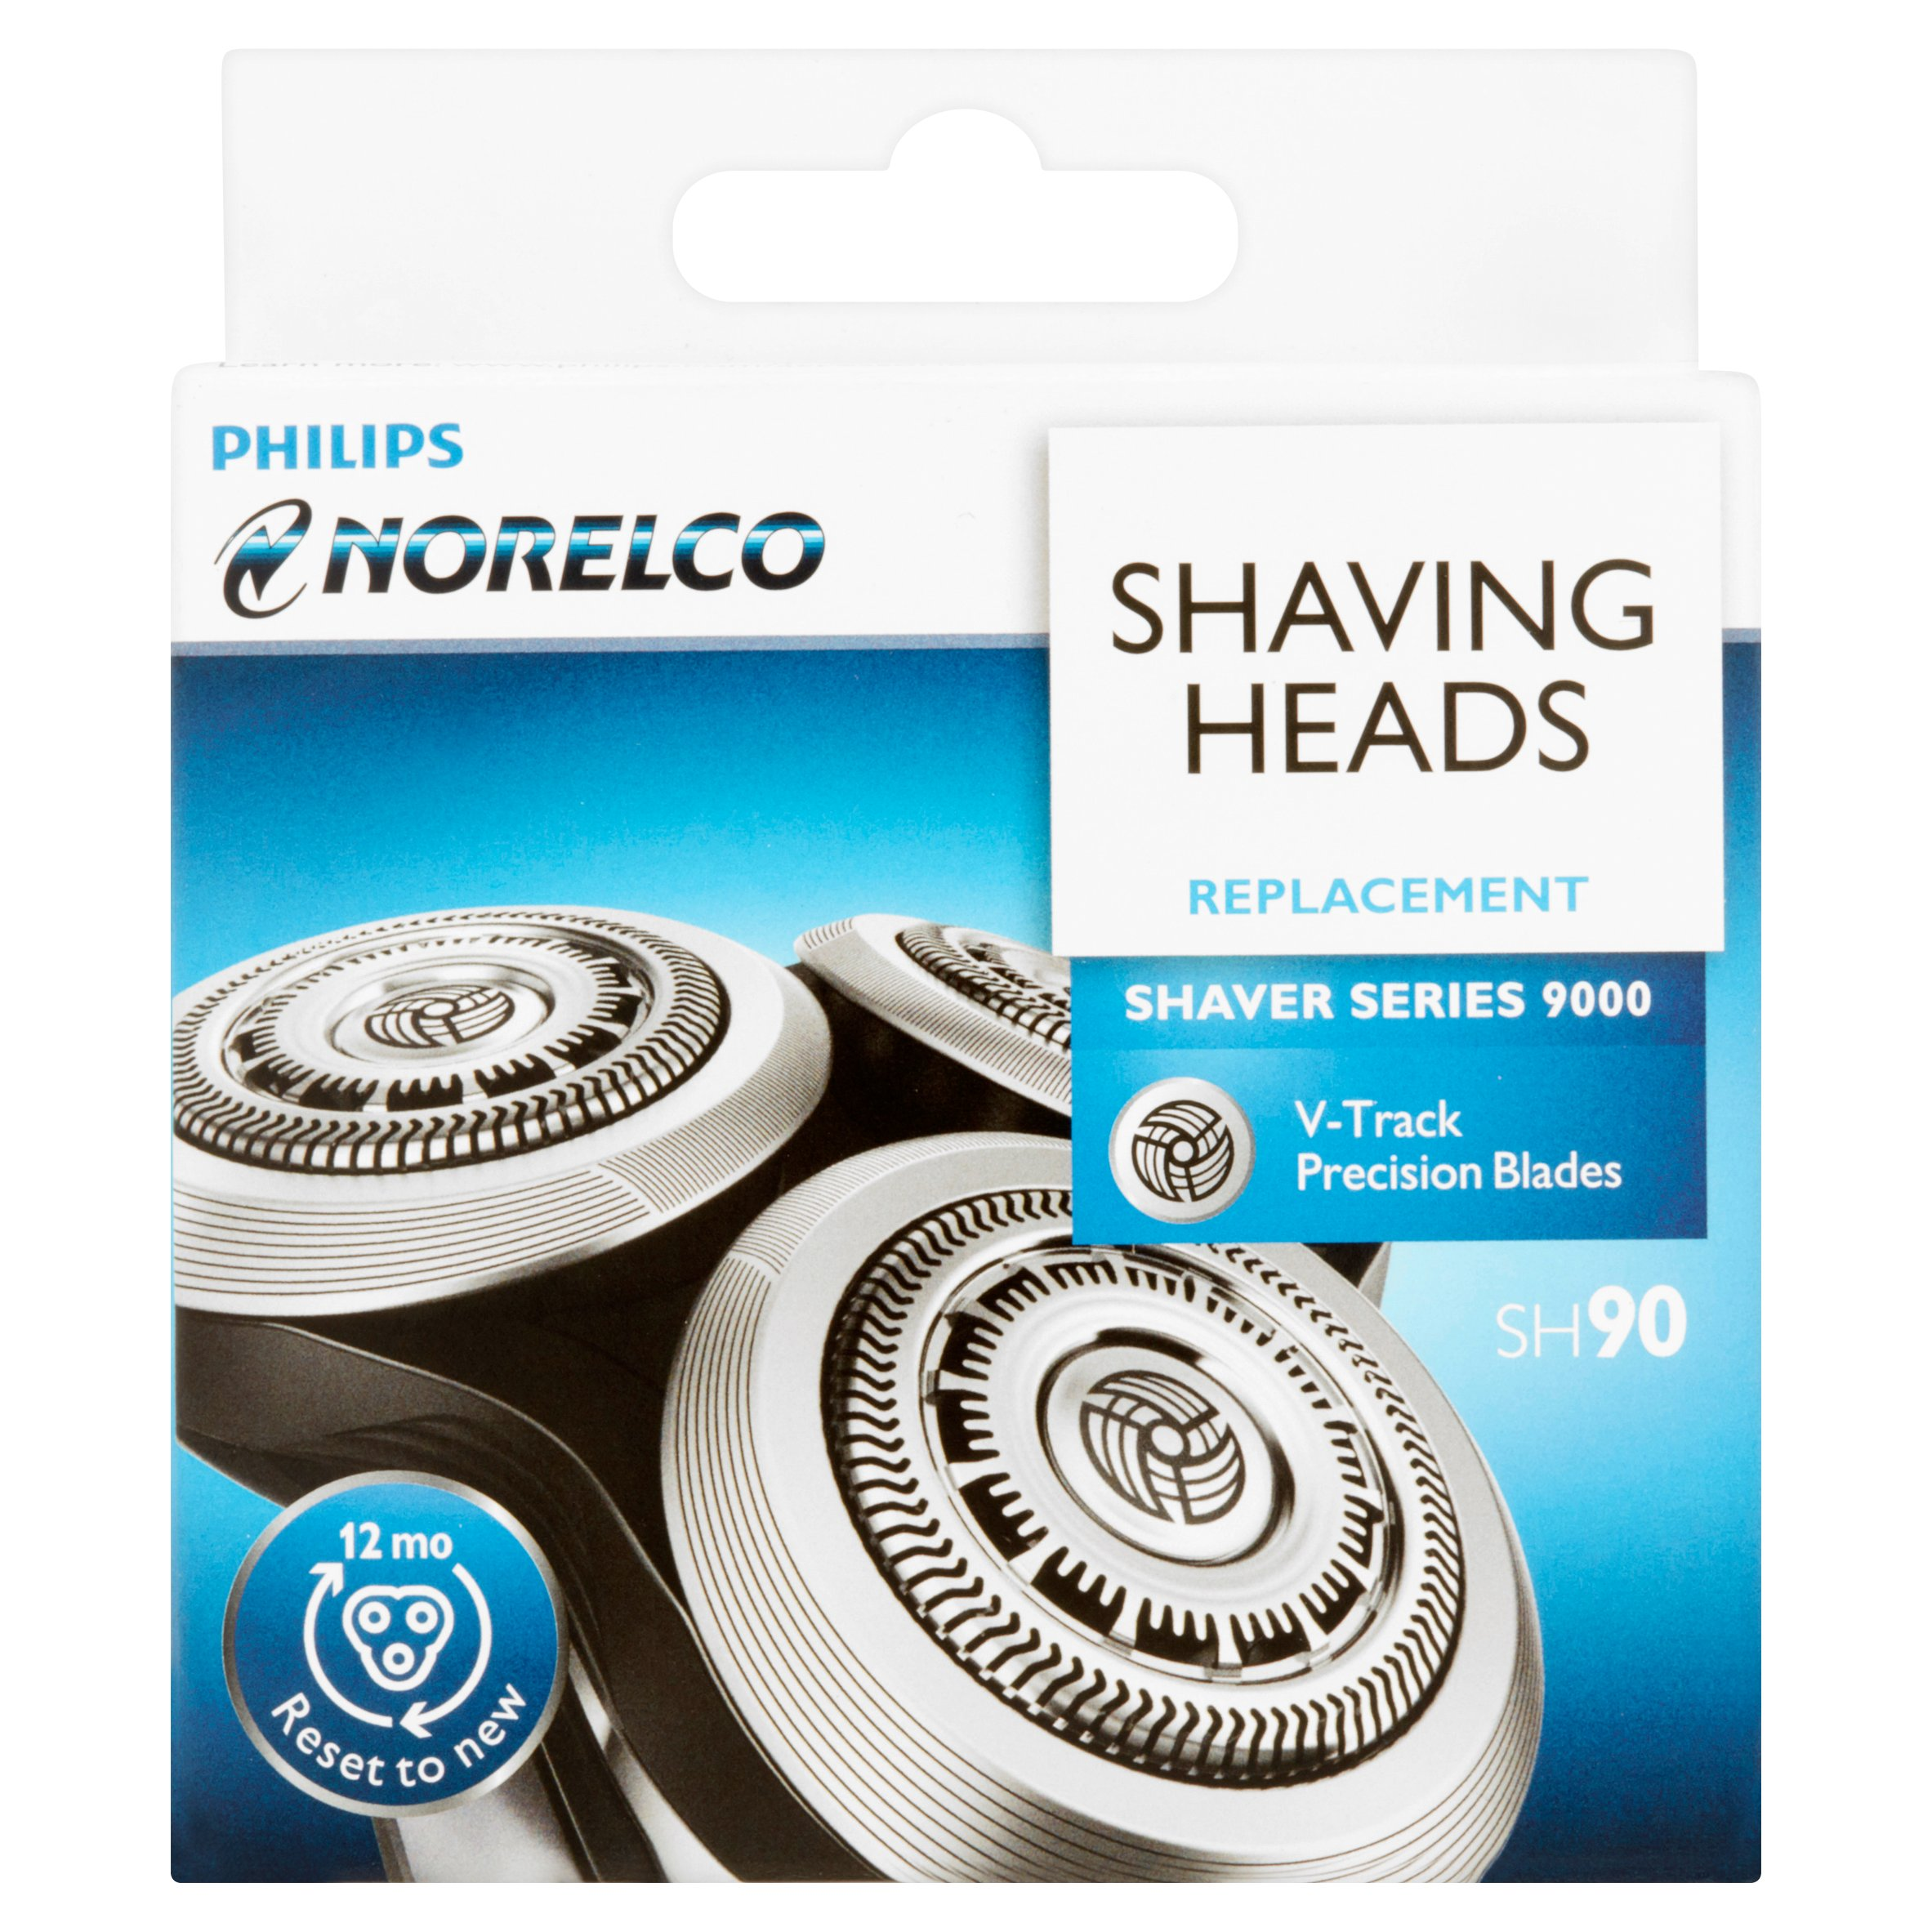 Philips Norelco SH90/52 Shaver 9000 Replacement Shaving Heads, 3 count